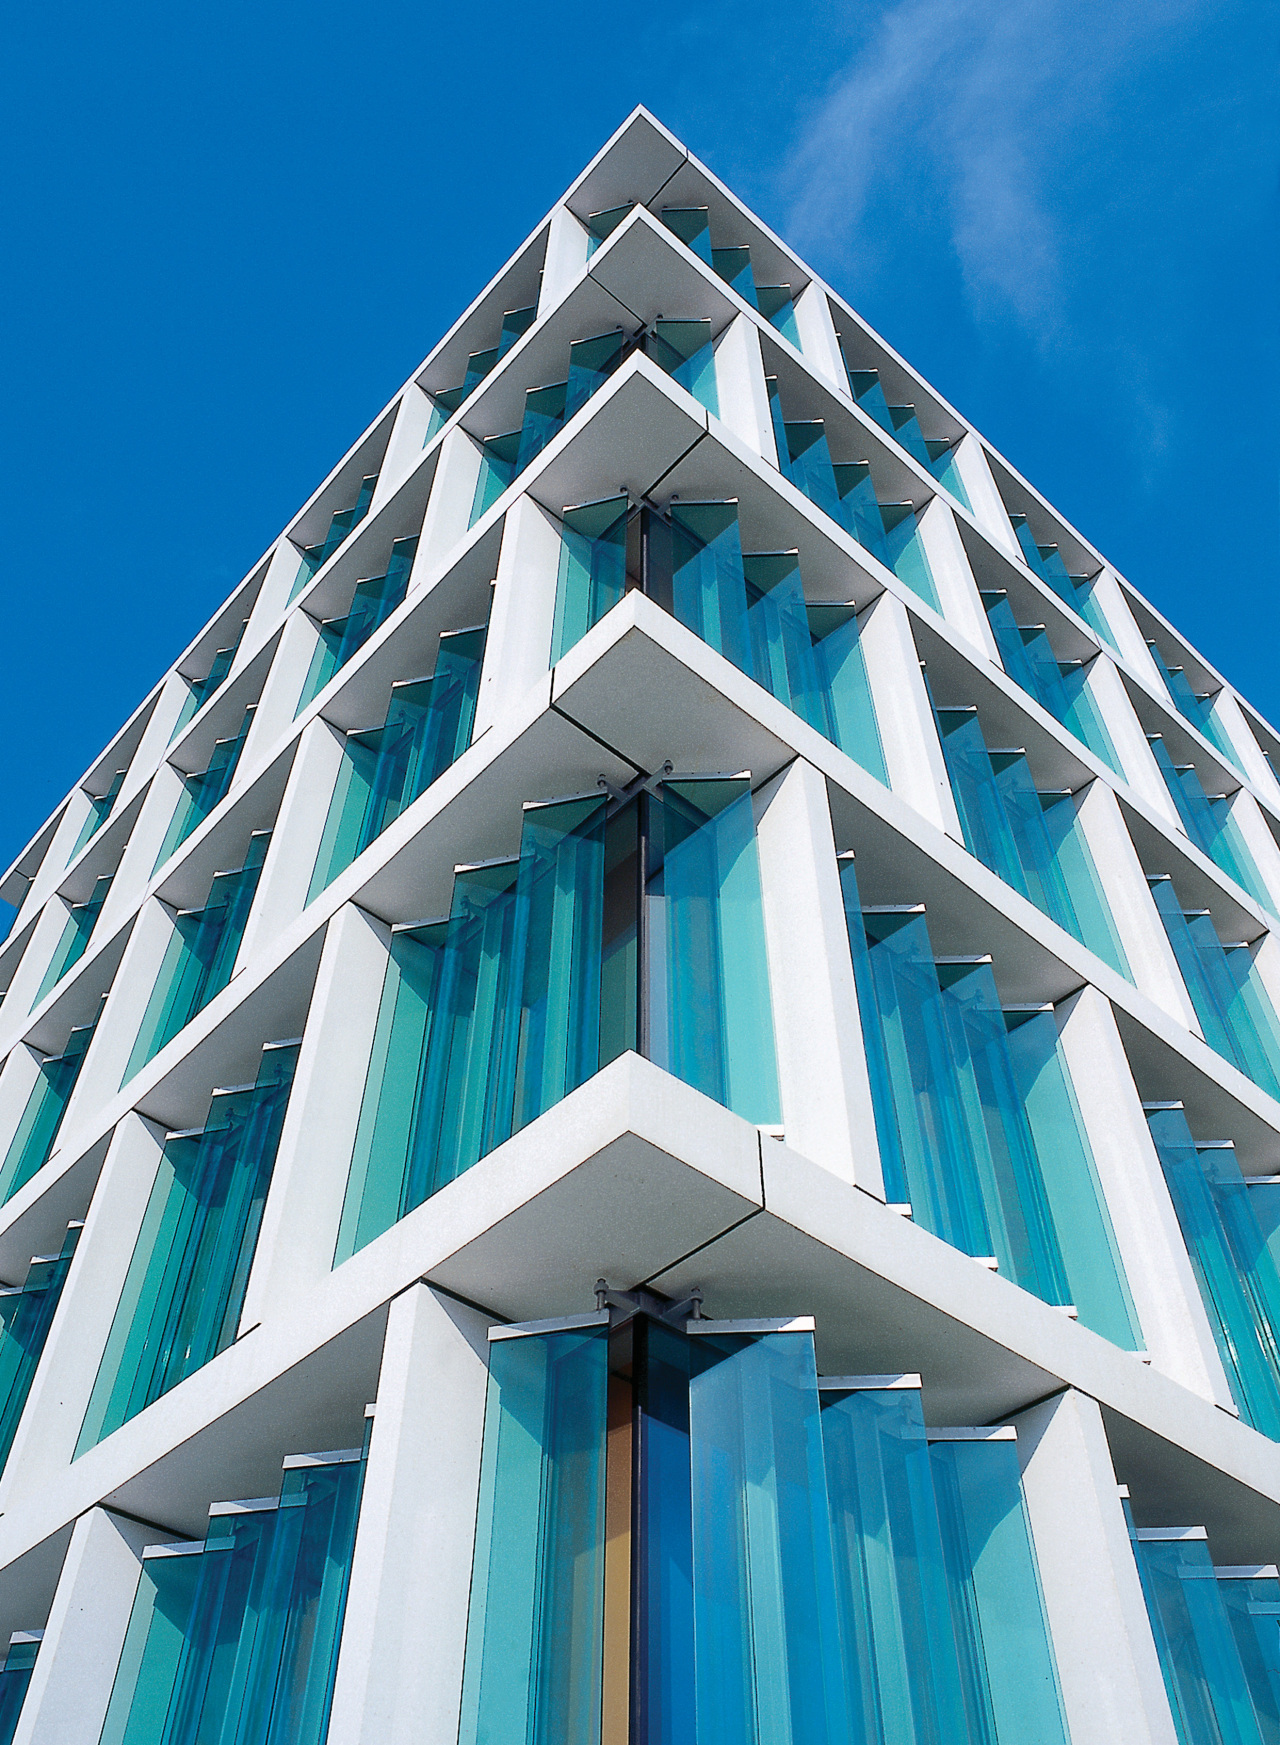 Colt Tolfab offers a range of sunshades and angle, architecture, blue, brutalist architecture, building, commercial building, condominium, corporate headquarters, daylighting, daytime, elevation, facade, headquarters, landmark, line, sky, skyscraper, structure, symmetry, tower block, teal, blue